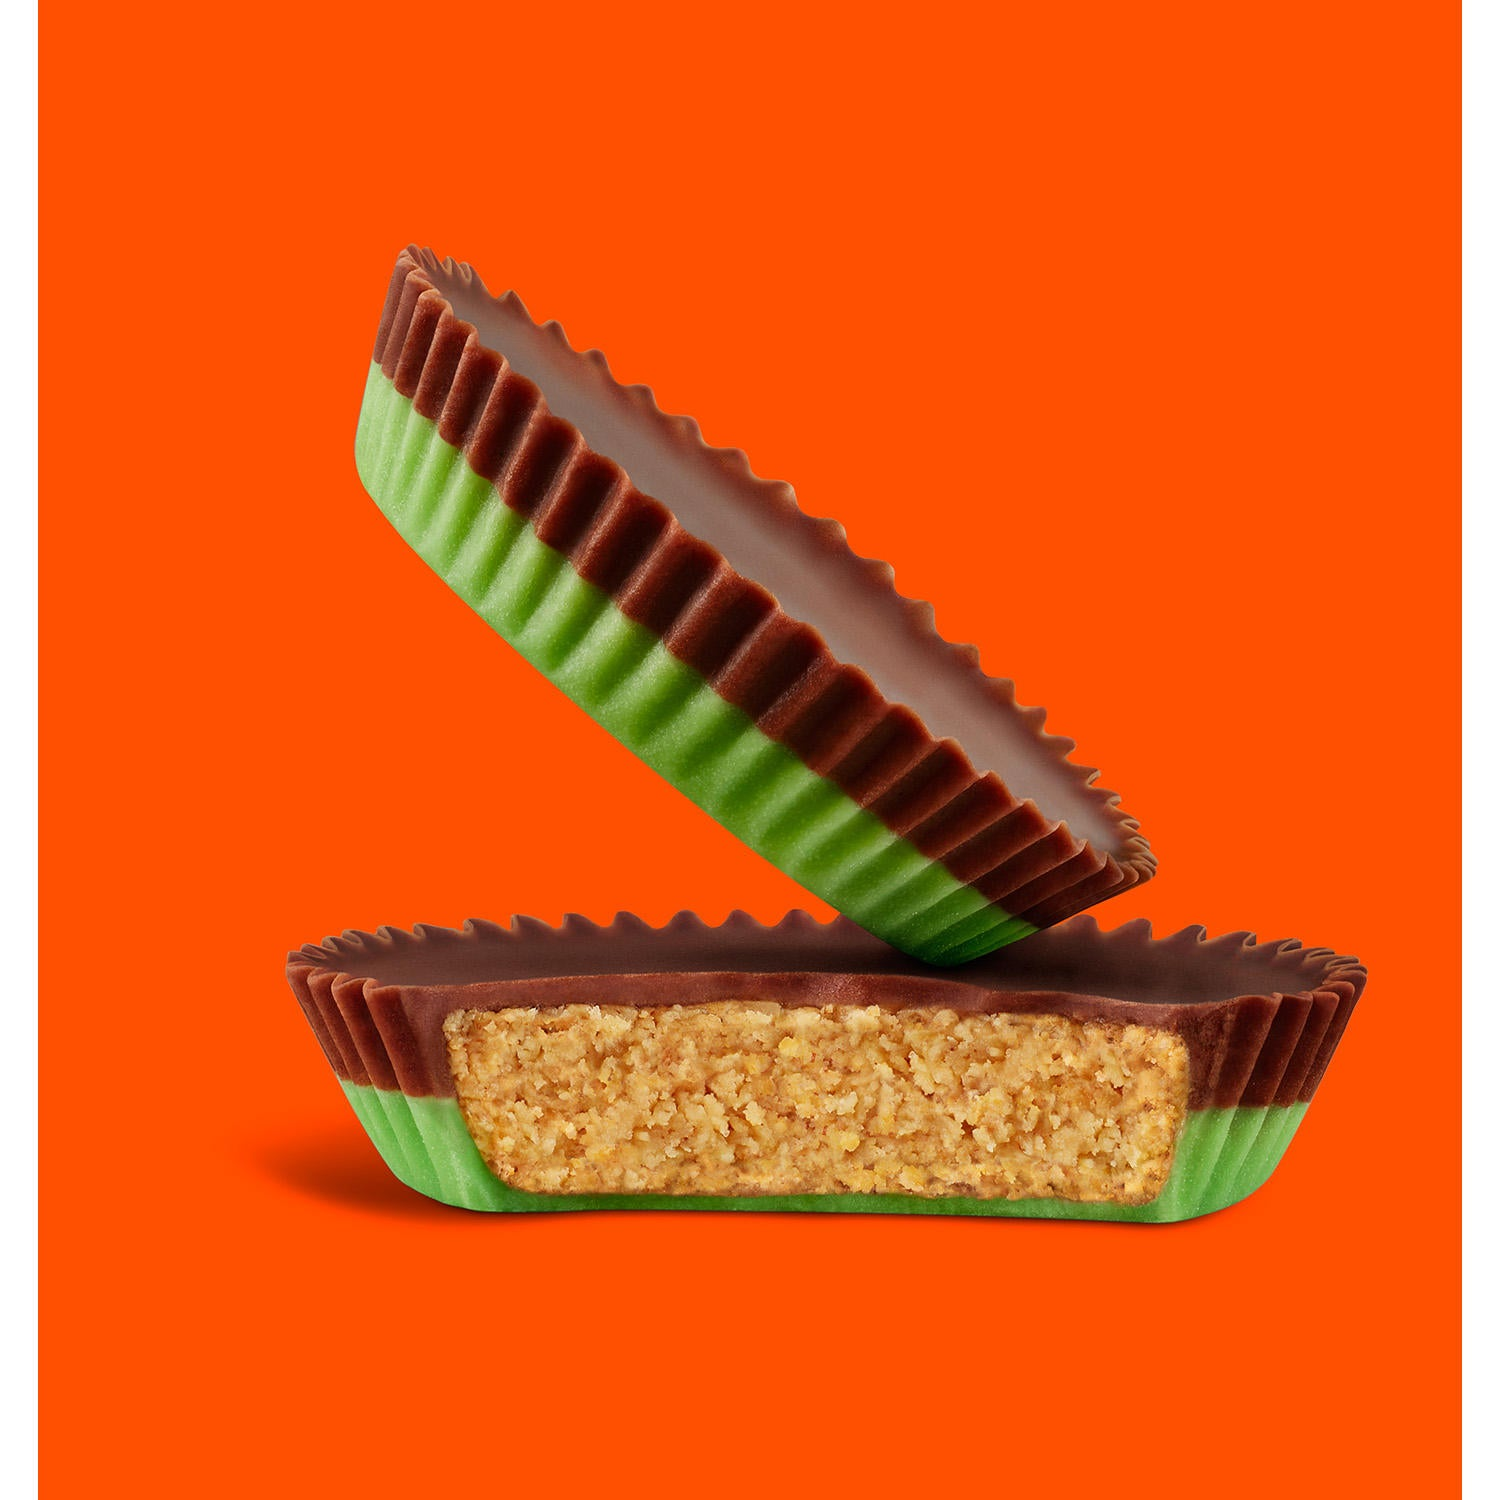 Reese's Franken-Cup Peanut Butter Cup with Halloween Green Creme, 1.2oz